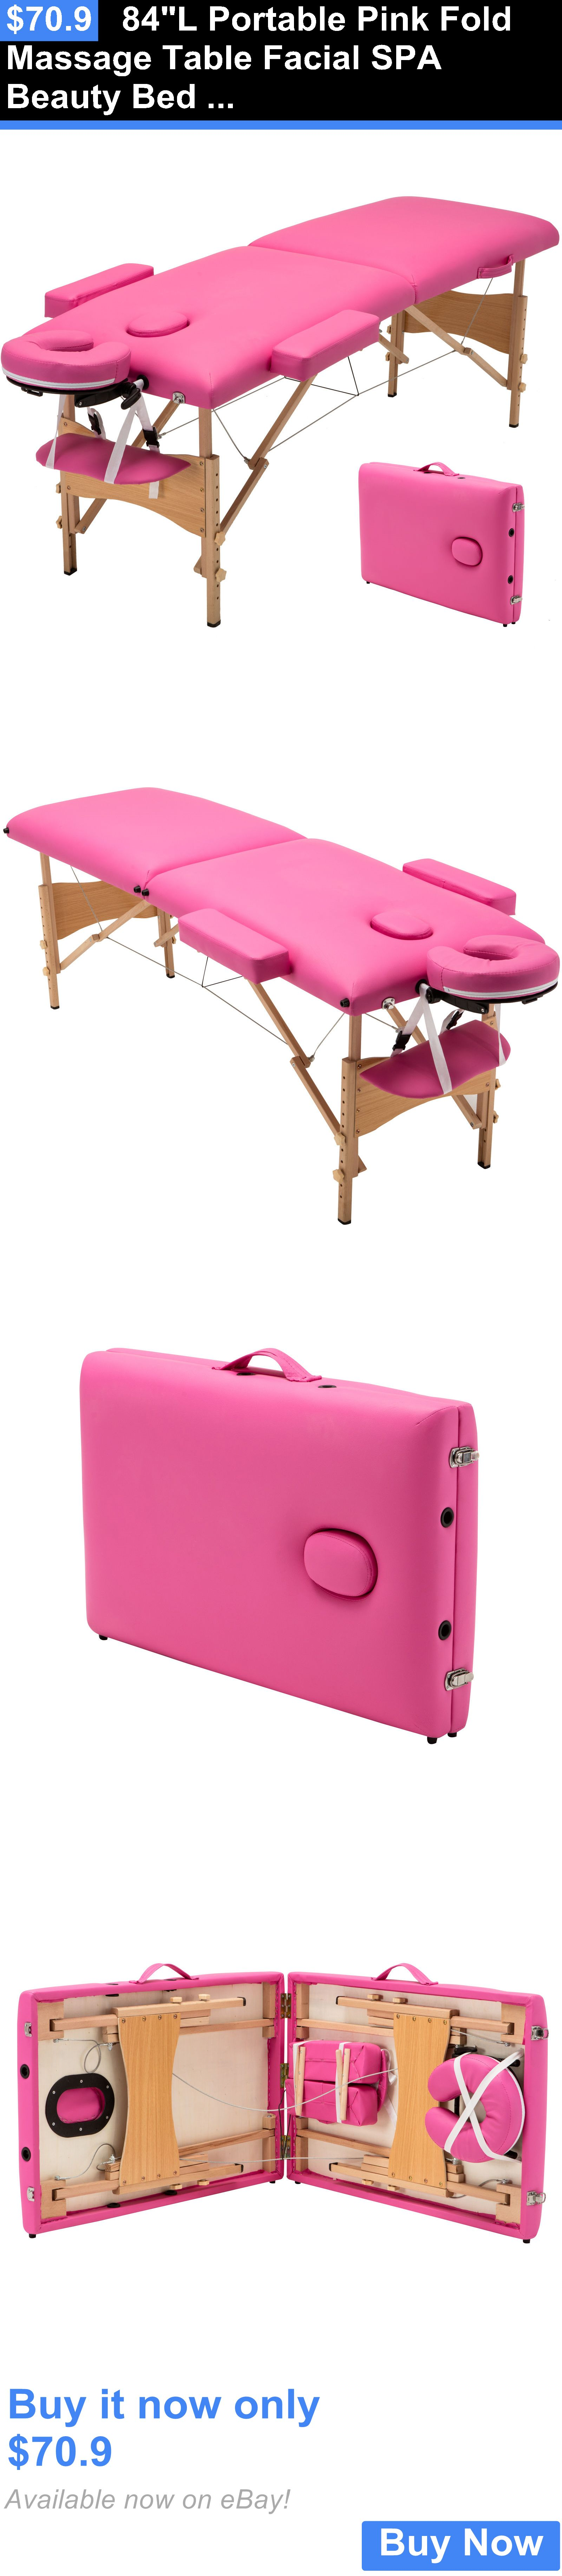 Massage Tables and Chairs 84L Portable Pink Fold Massage